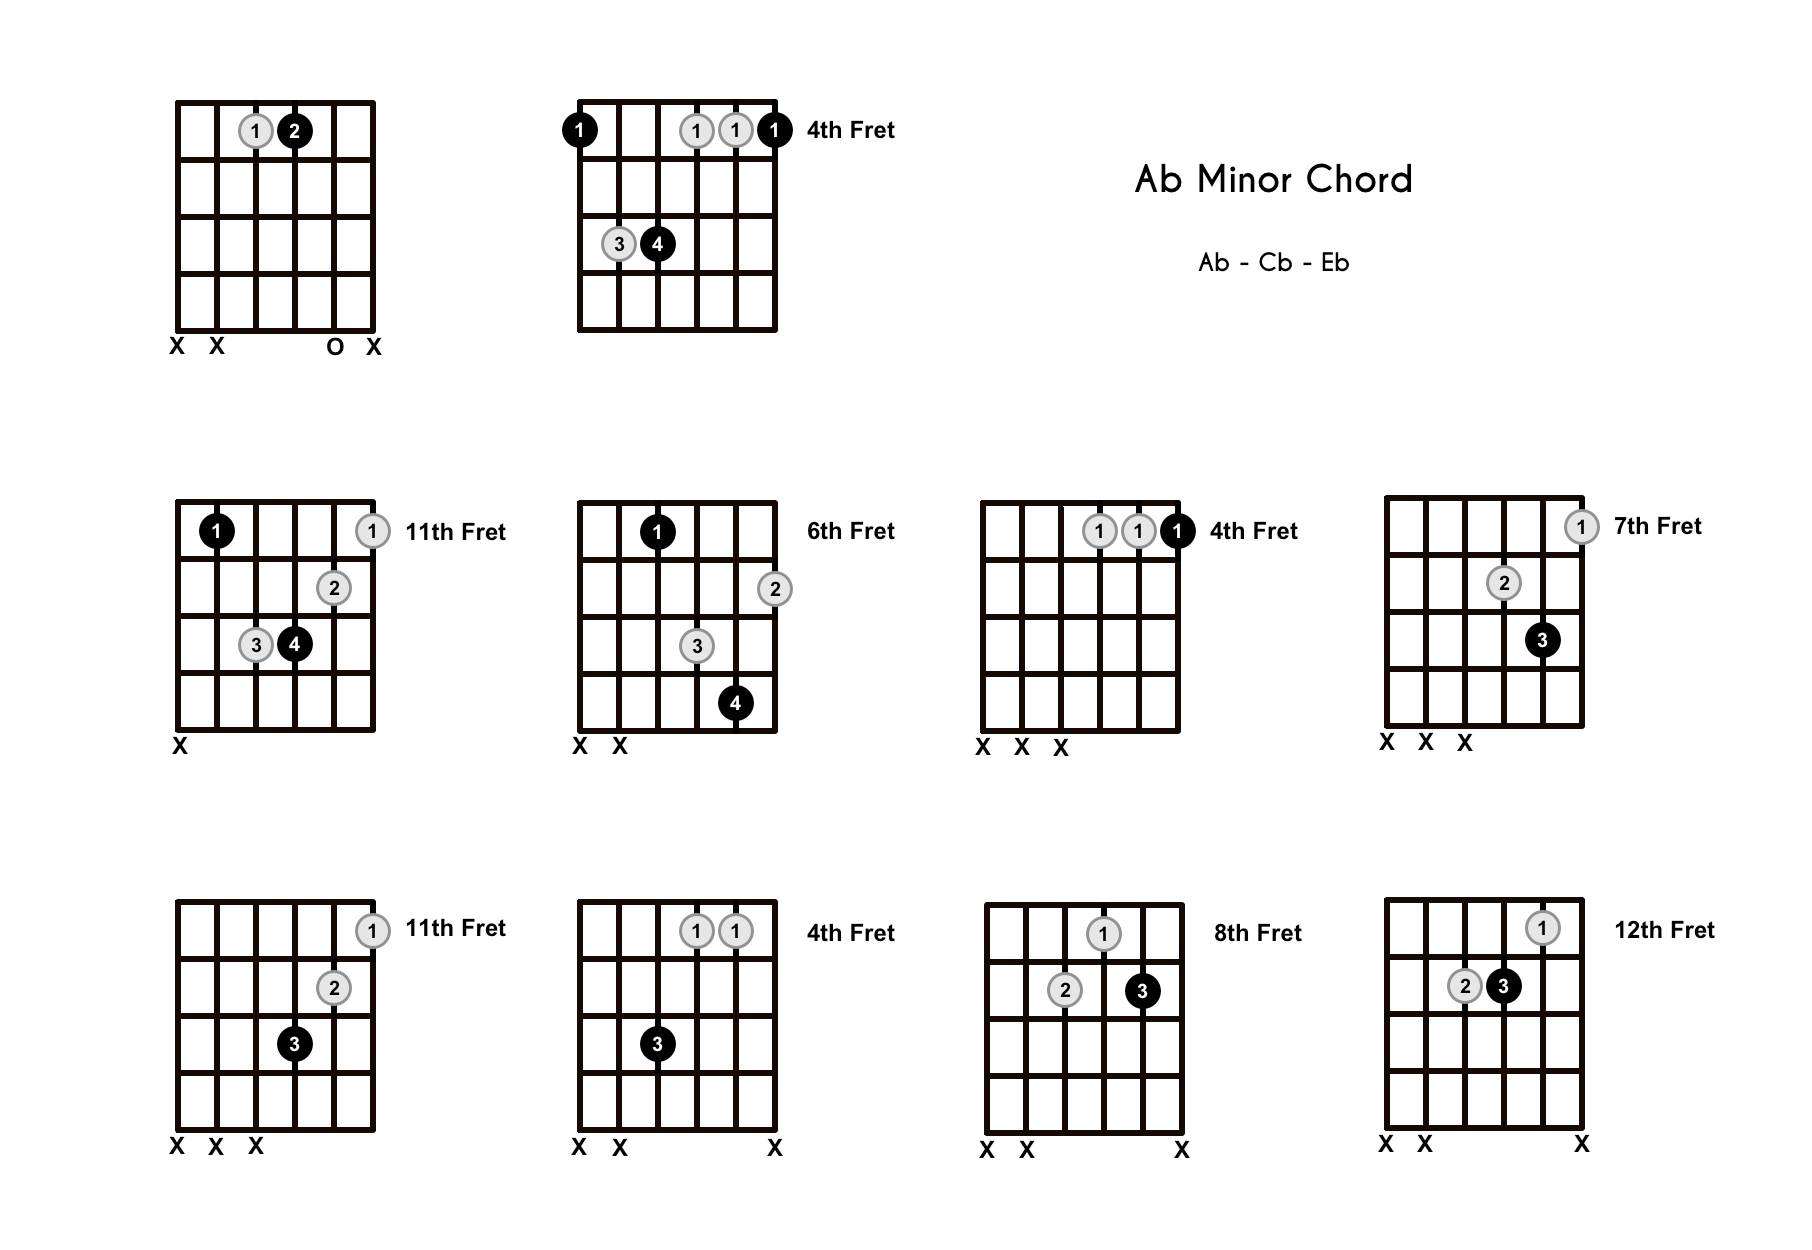 Abm Chord on the Guitar (A Flat Minor) – Diagrams, Finger Positions, Theory